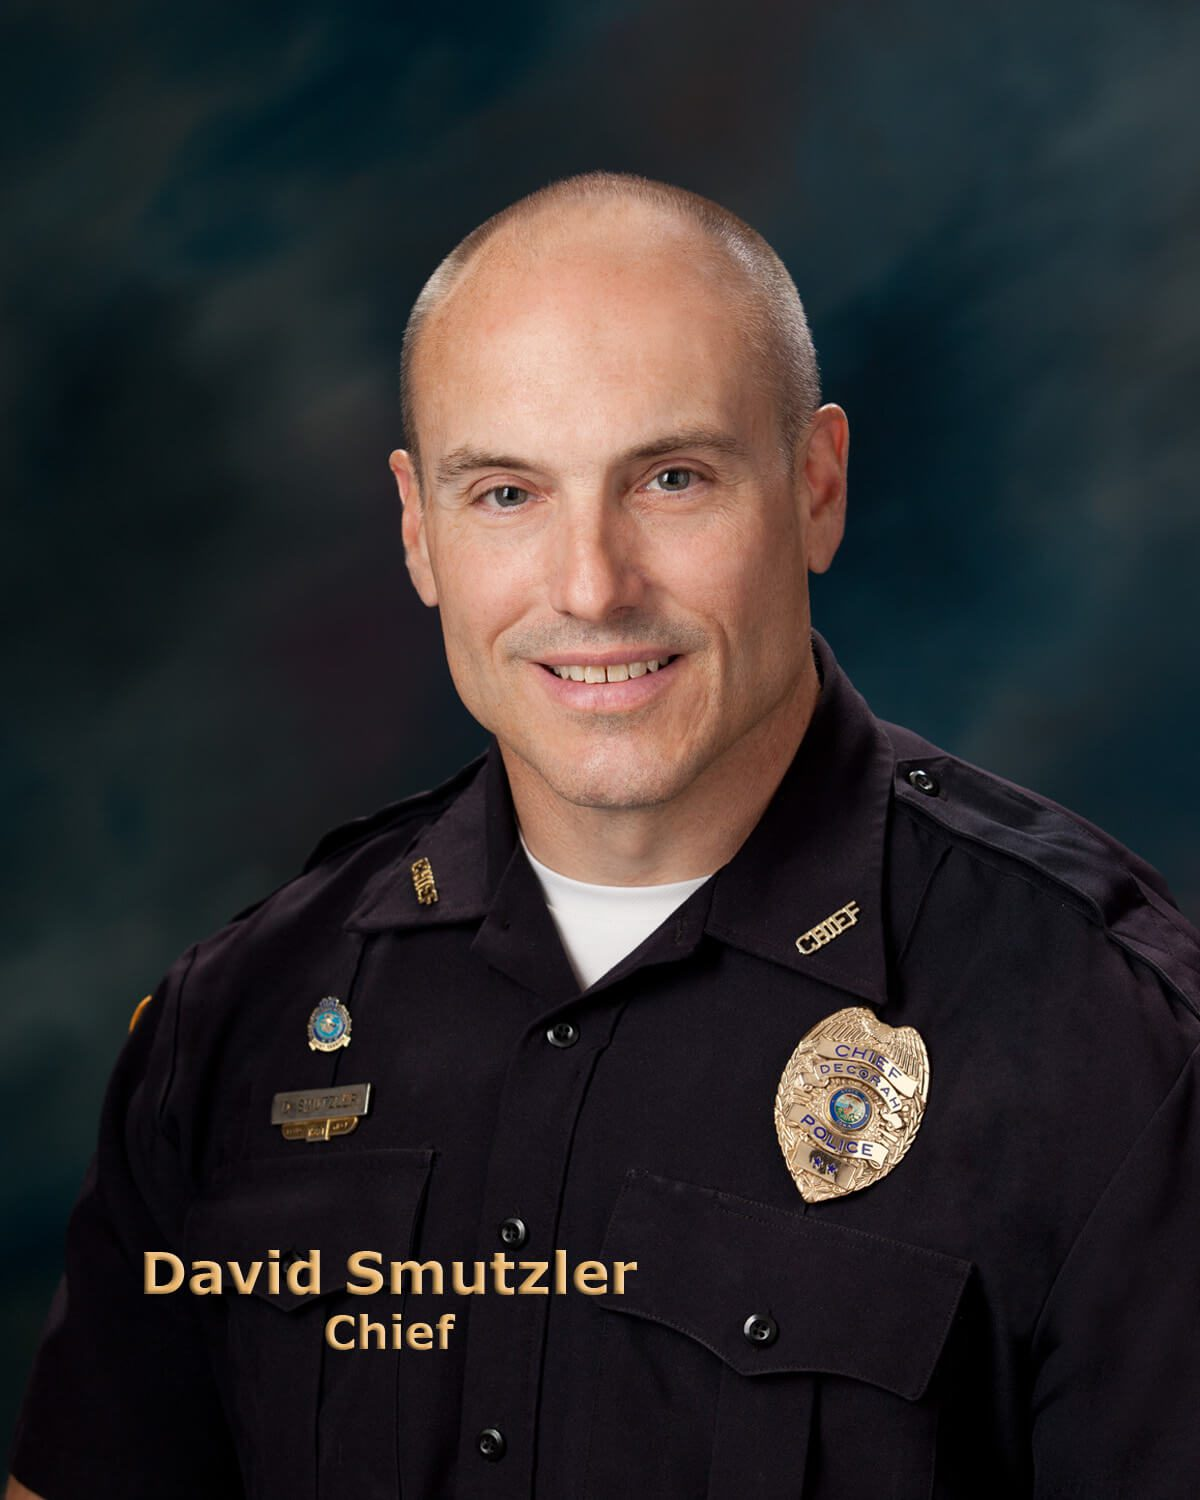 David Smutzler, Chief of Police